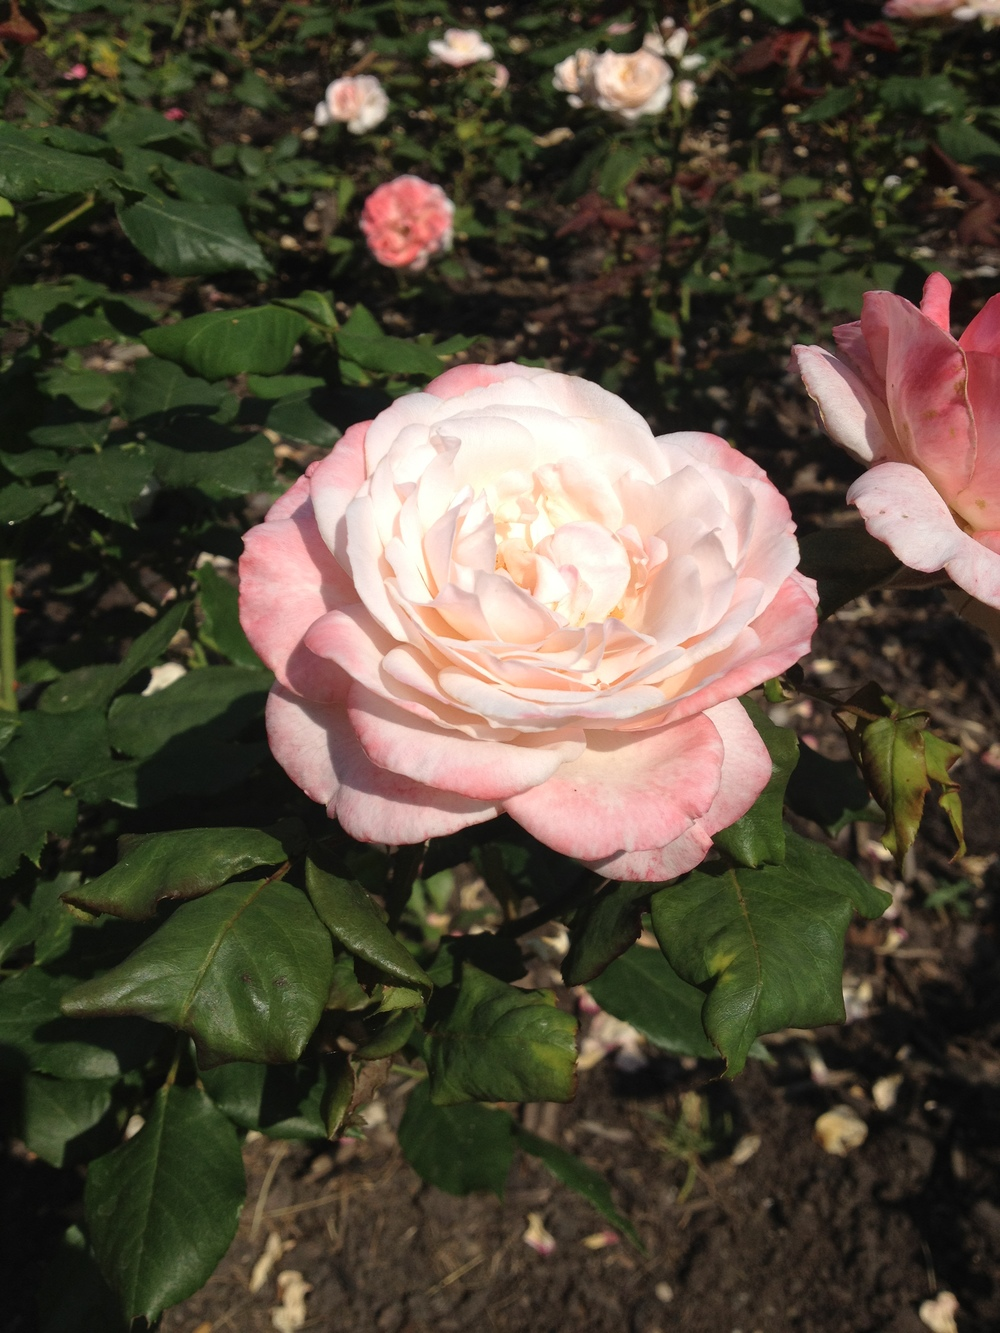 In the rose garden at Pitzhanger Manor in the summer